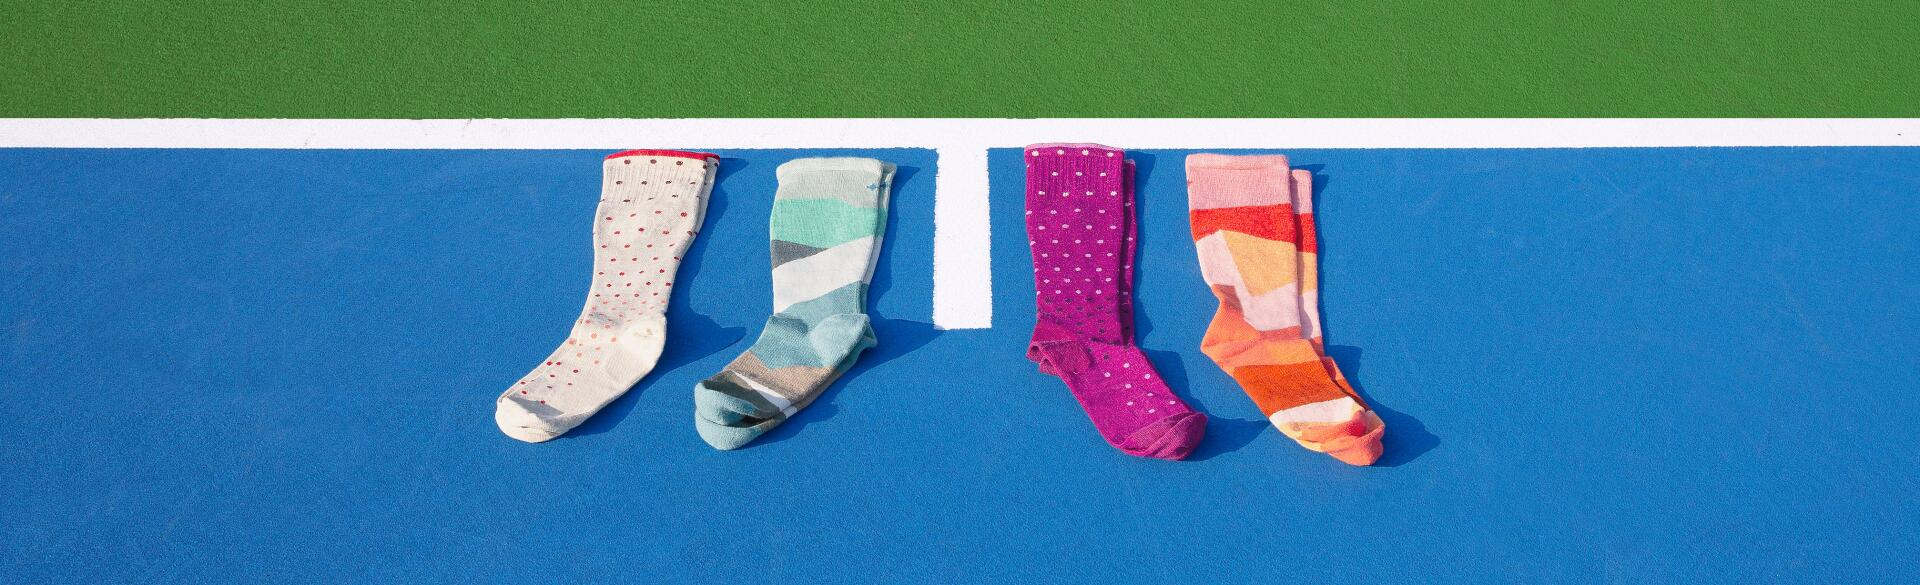 compression socks photographed on a blue tennis court